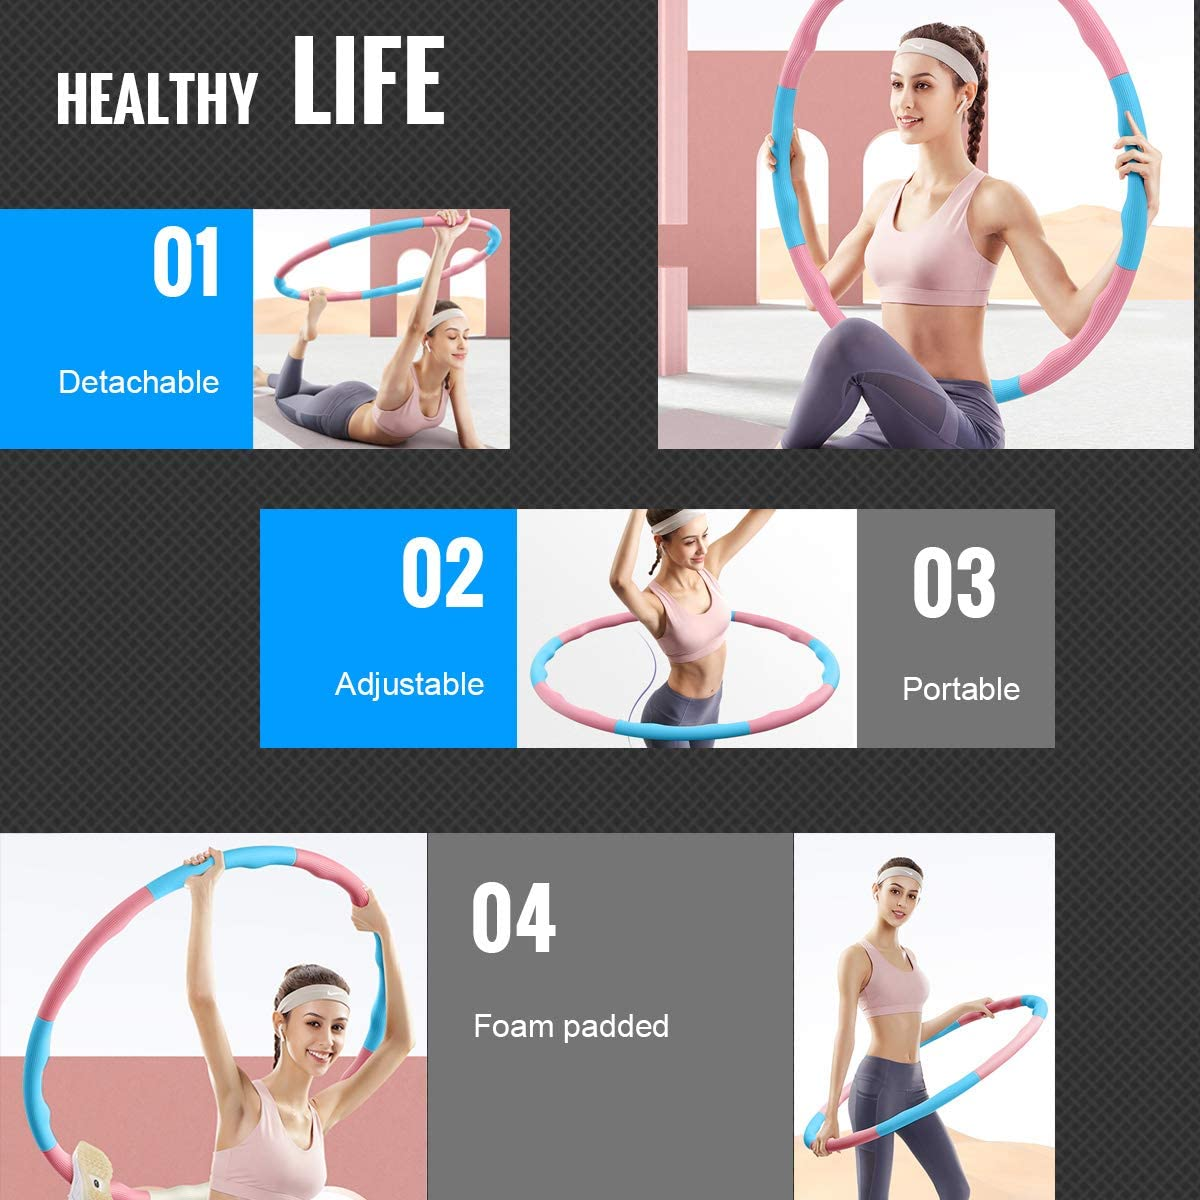 Pink/&Blue 8 Section Detachable Design with Waist Ruler DUTISON Hula Hoop fitness for Adults Soft EVA Foam Padded Hula Hoops 1KG